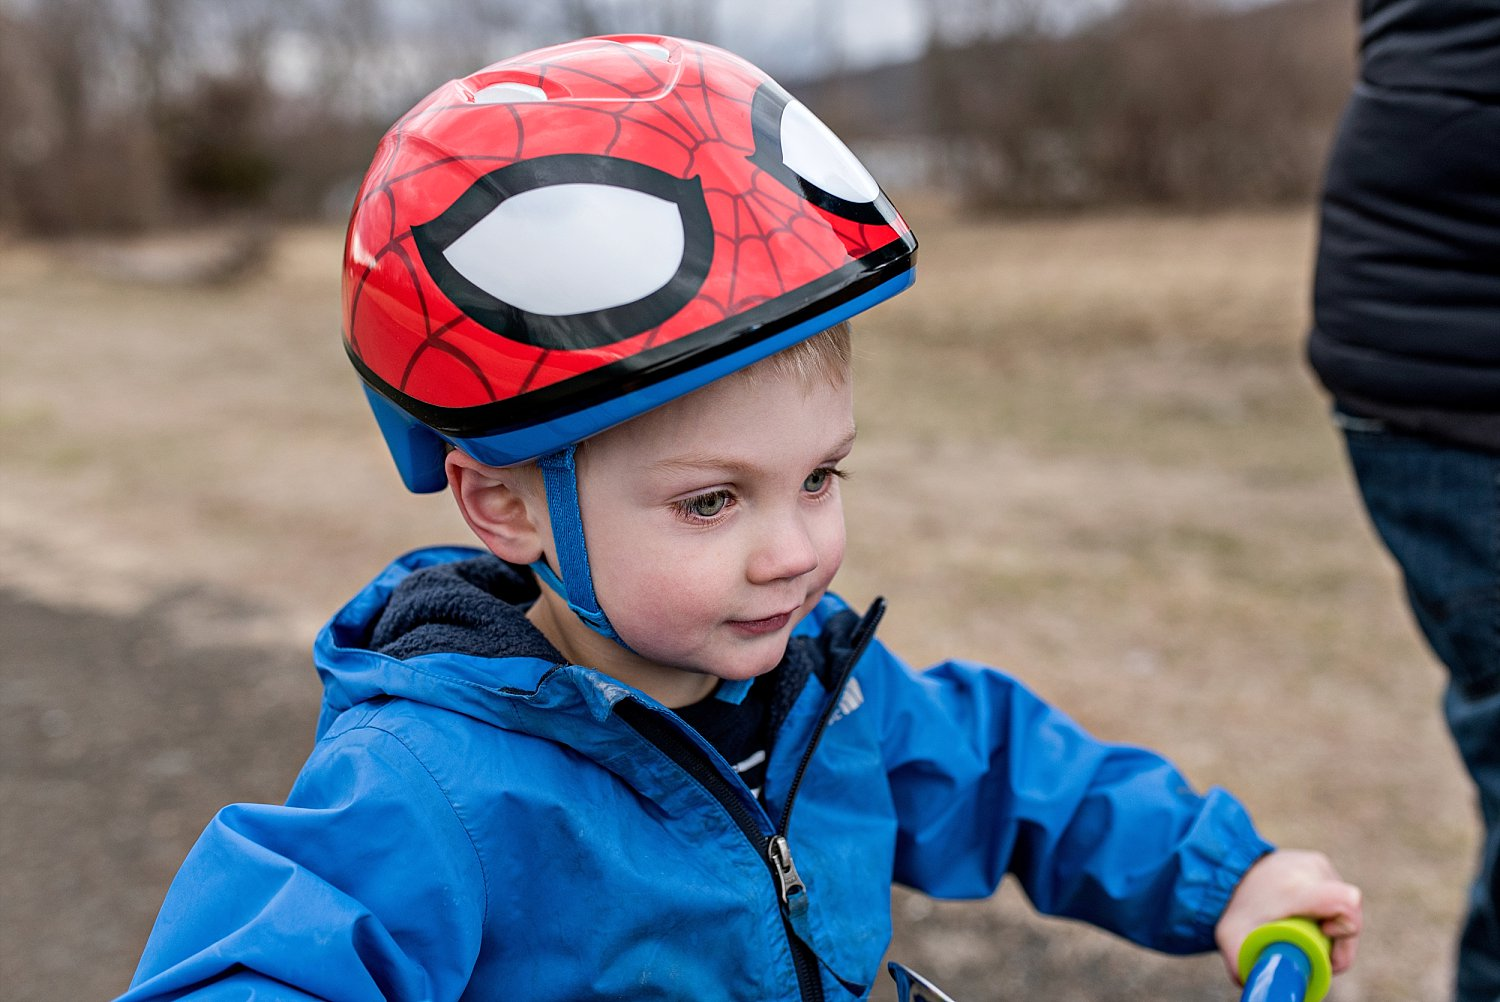 connecticut professional family photos. toddler boy with spider man helmet